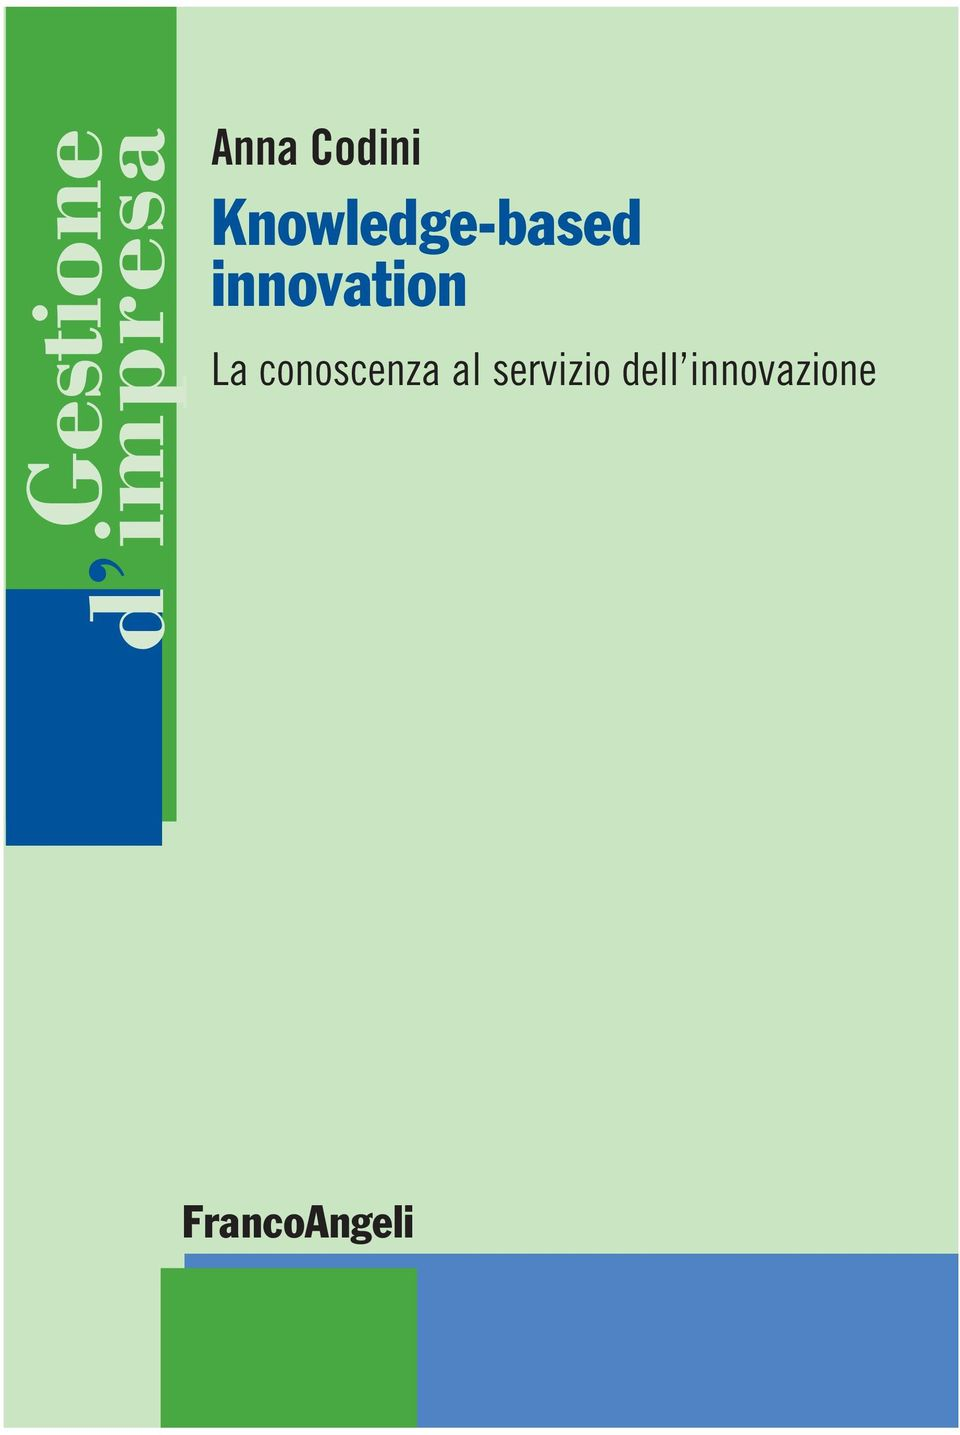 innovation La conoscenza al